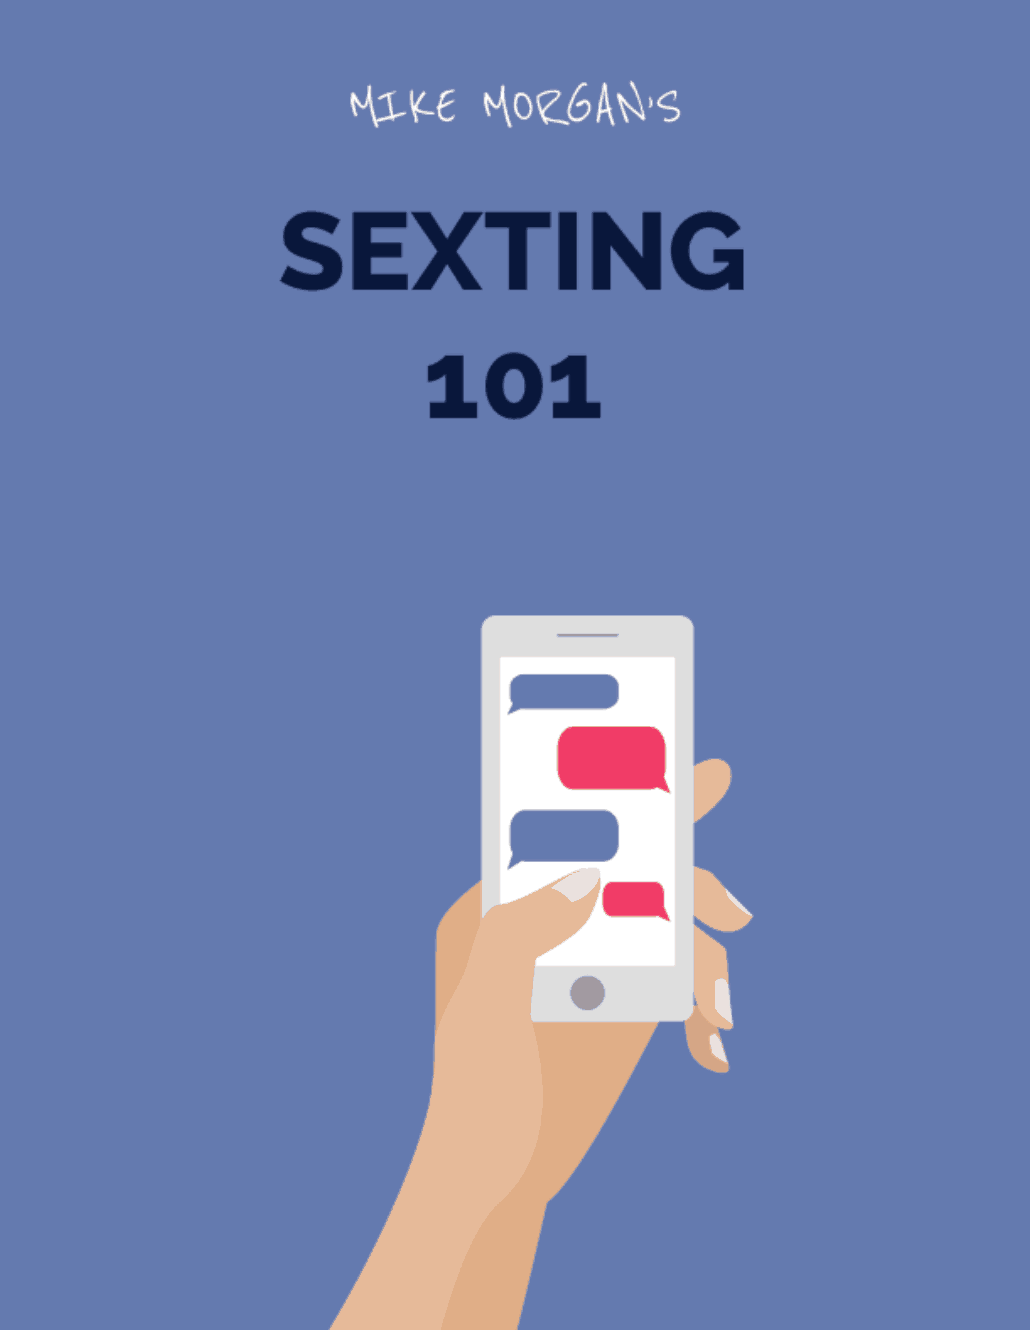 Sexting book cover by Mike Morgan